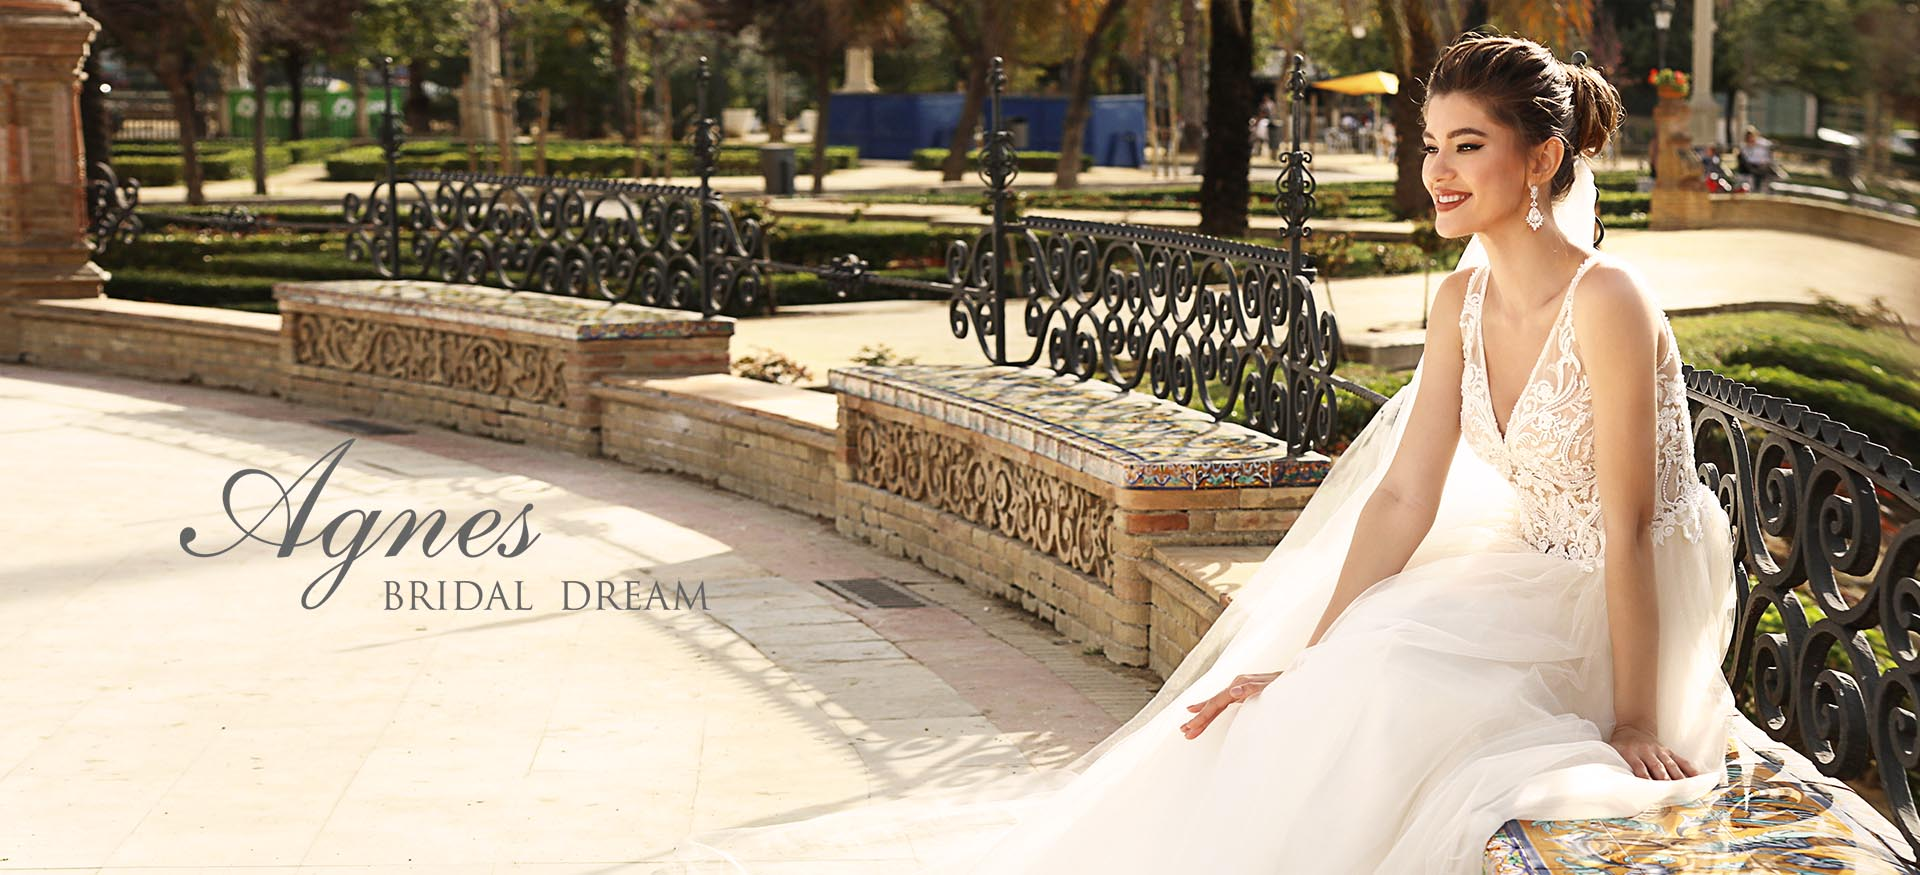 New collection Agnes Bridal Dream 2021